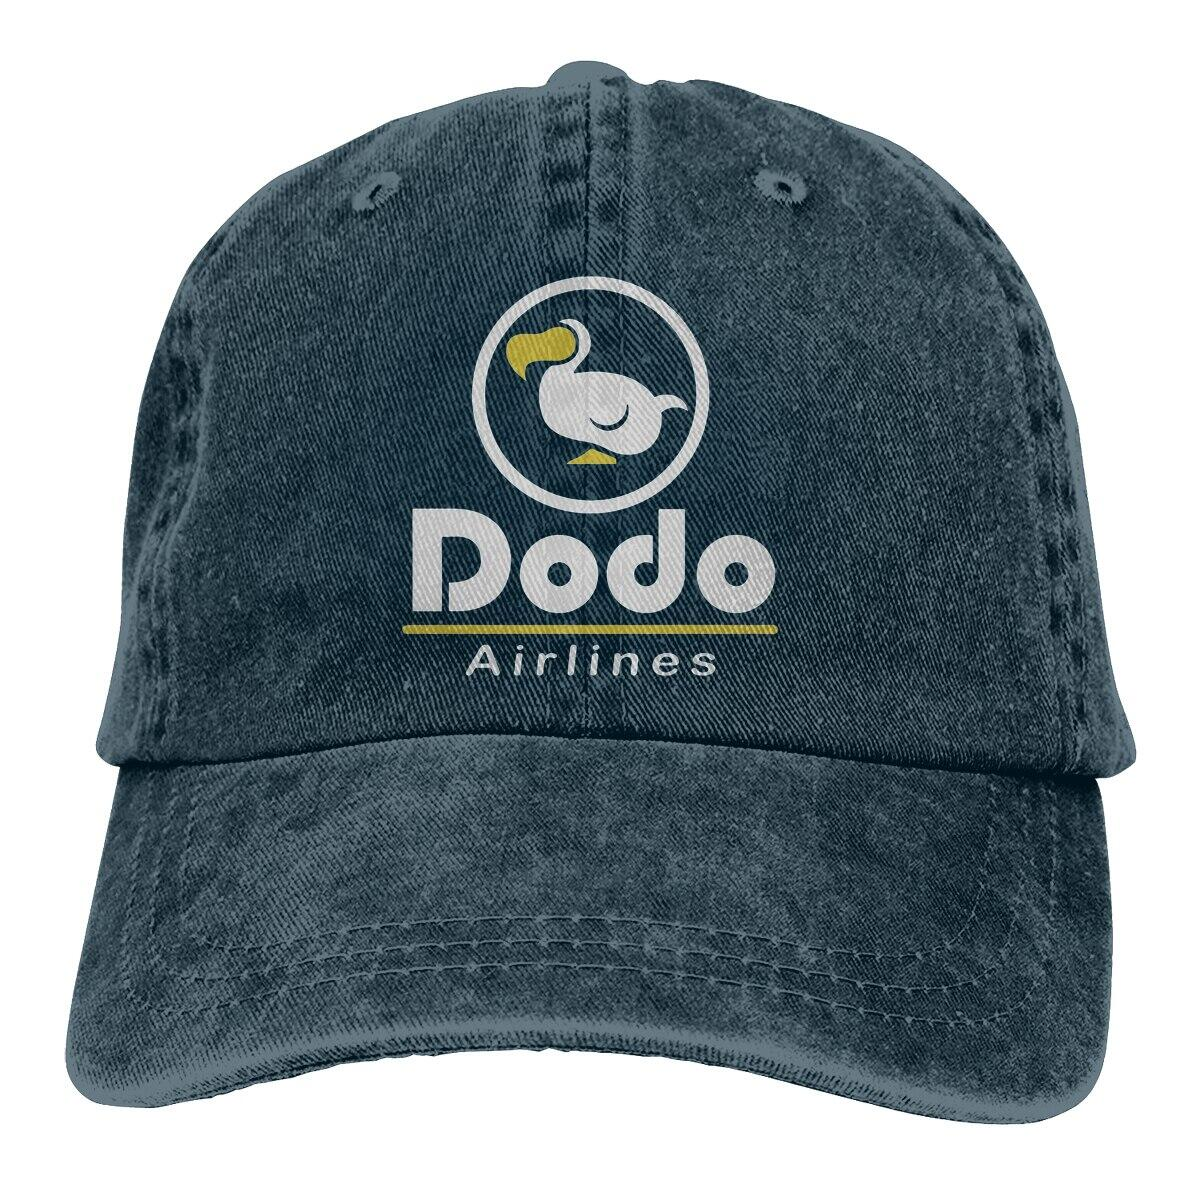 Dodo Airlines Baseball Style Snapback Hat, Navy Blue / One Size